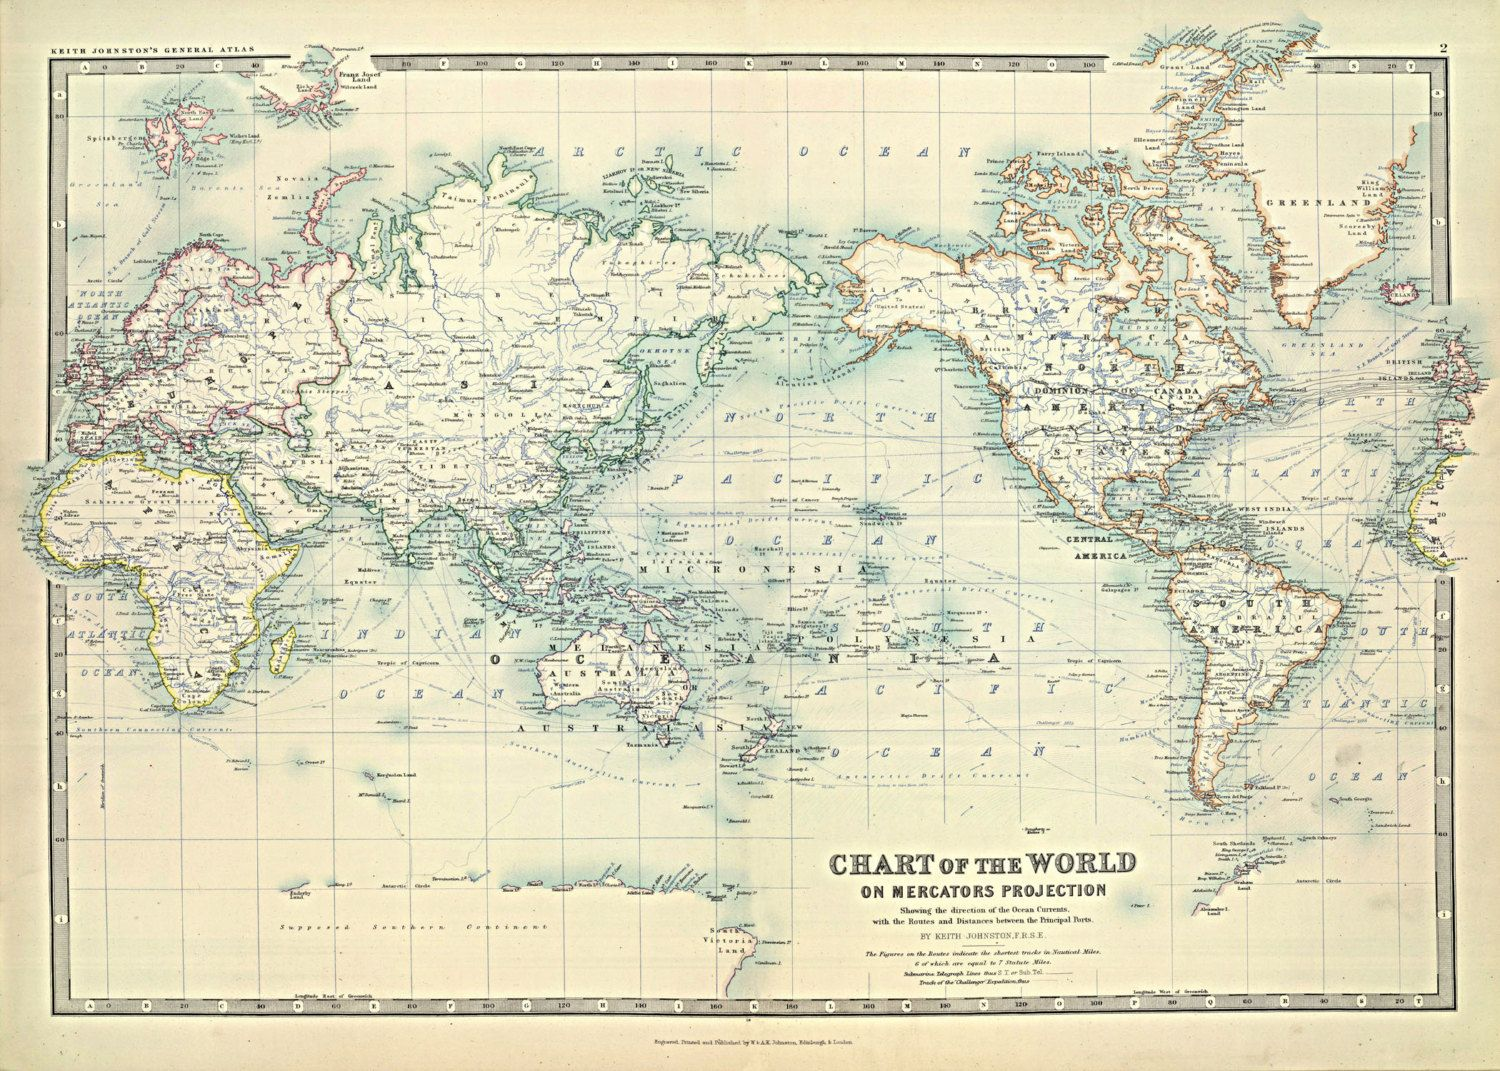 World map of the ocean currents 1893 print poster ocean current world map of the ocean currents 1893 20 x 30 print poster 2995 via etsy gumiabroncs Choice Image